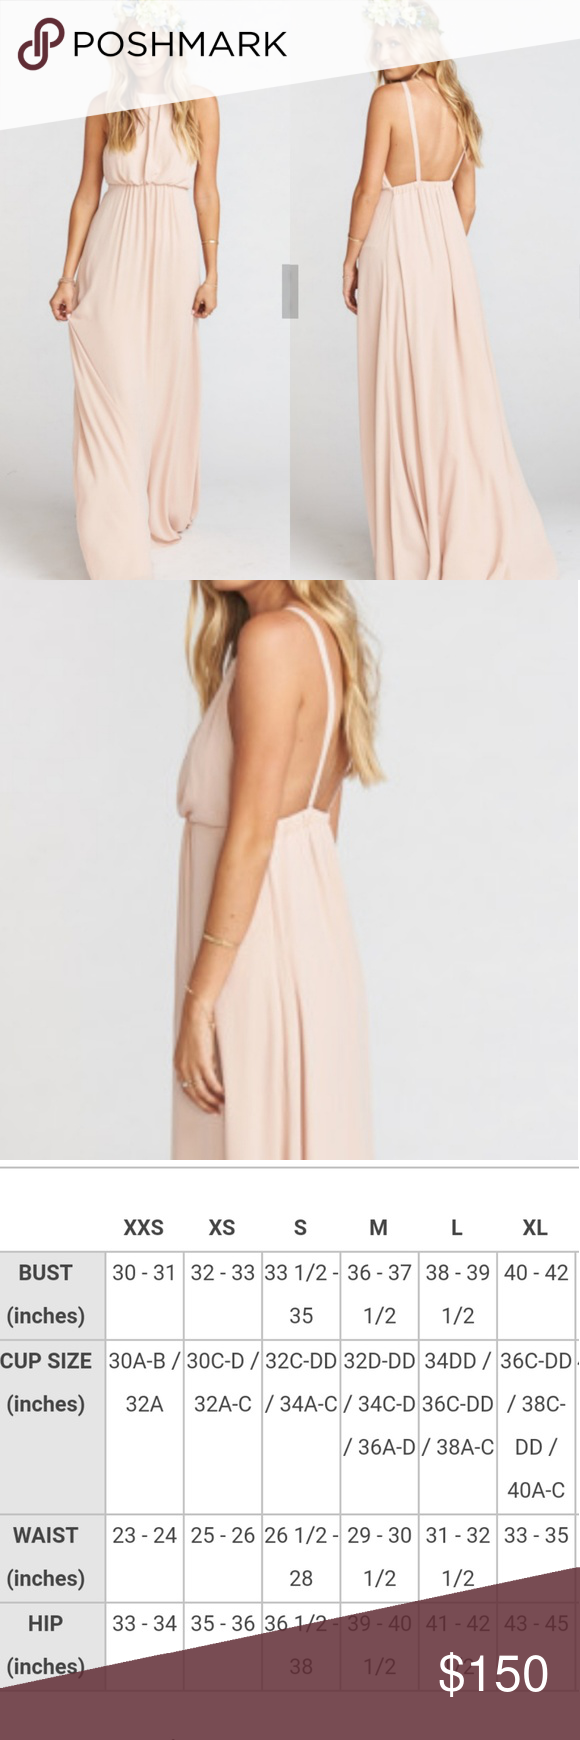 SMYM Amanda Open Back Blouson Gown New with Retail tag